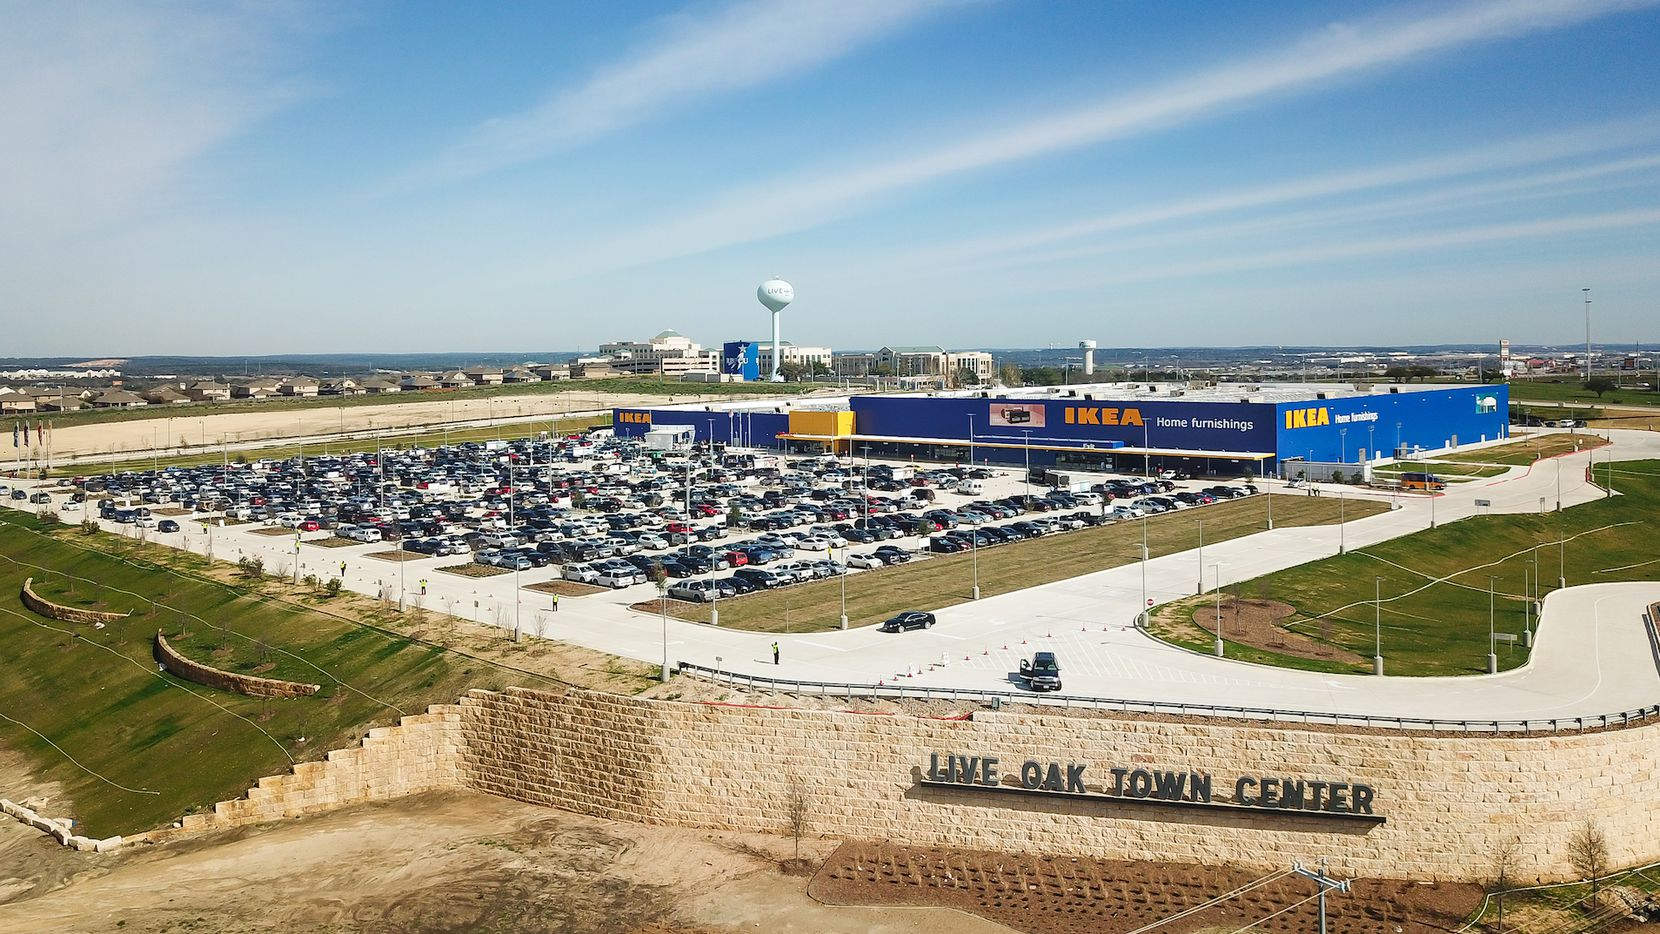 One of Weitzman's newest Texas projects is the almost 1 million-square-foot Live Oak Town Center in San Antonio, which is anchored by Ikea